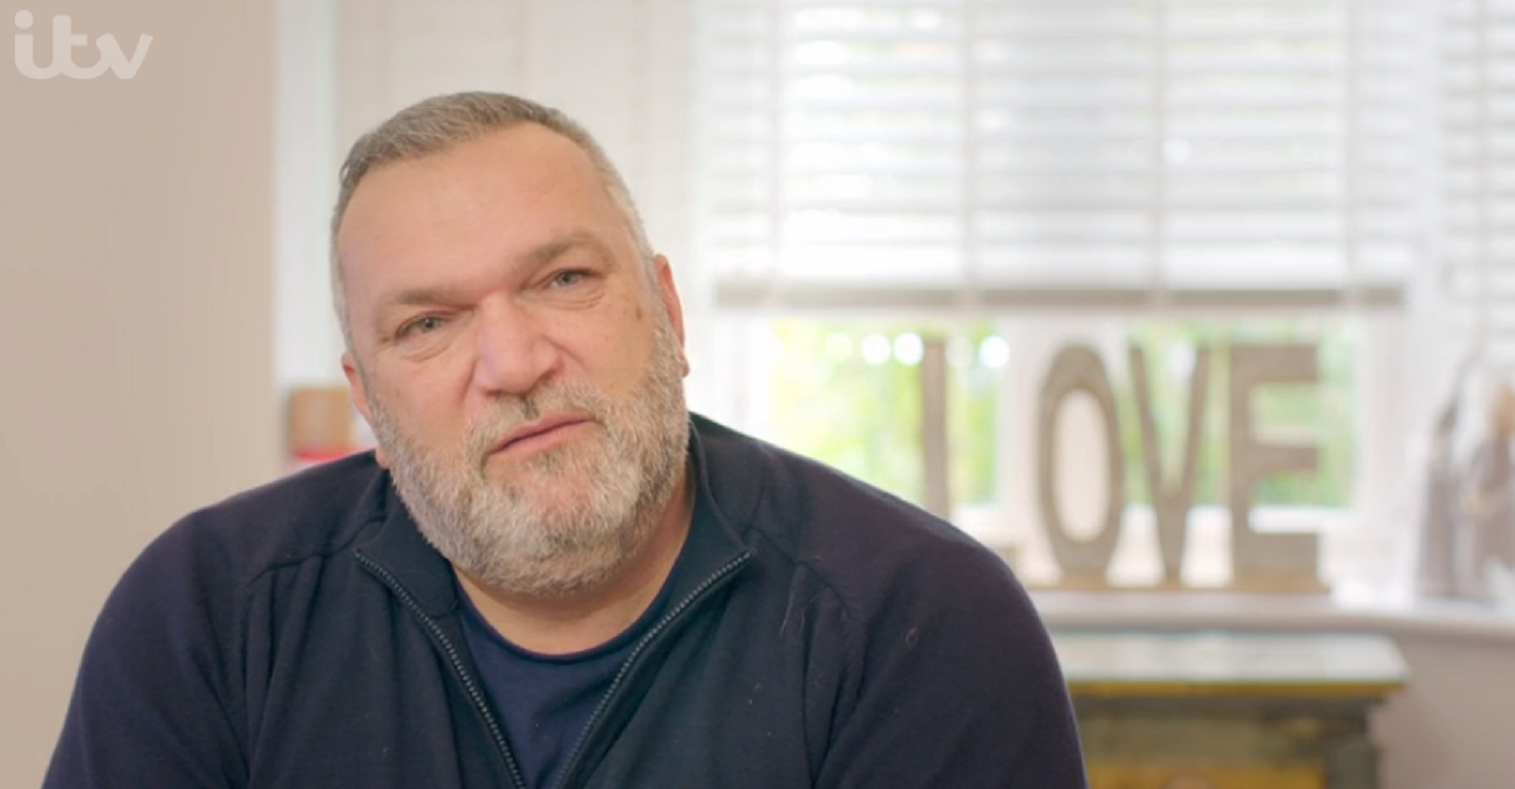 Harry's Heroes: Euro Having a Laugh viewers in tears over Neil 'Razor' Ruddock's health issues